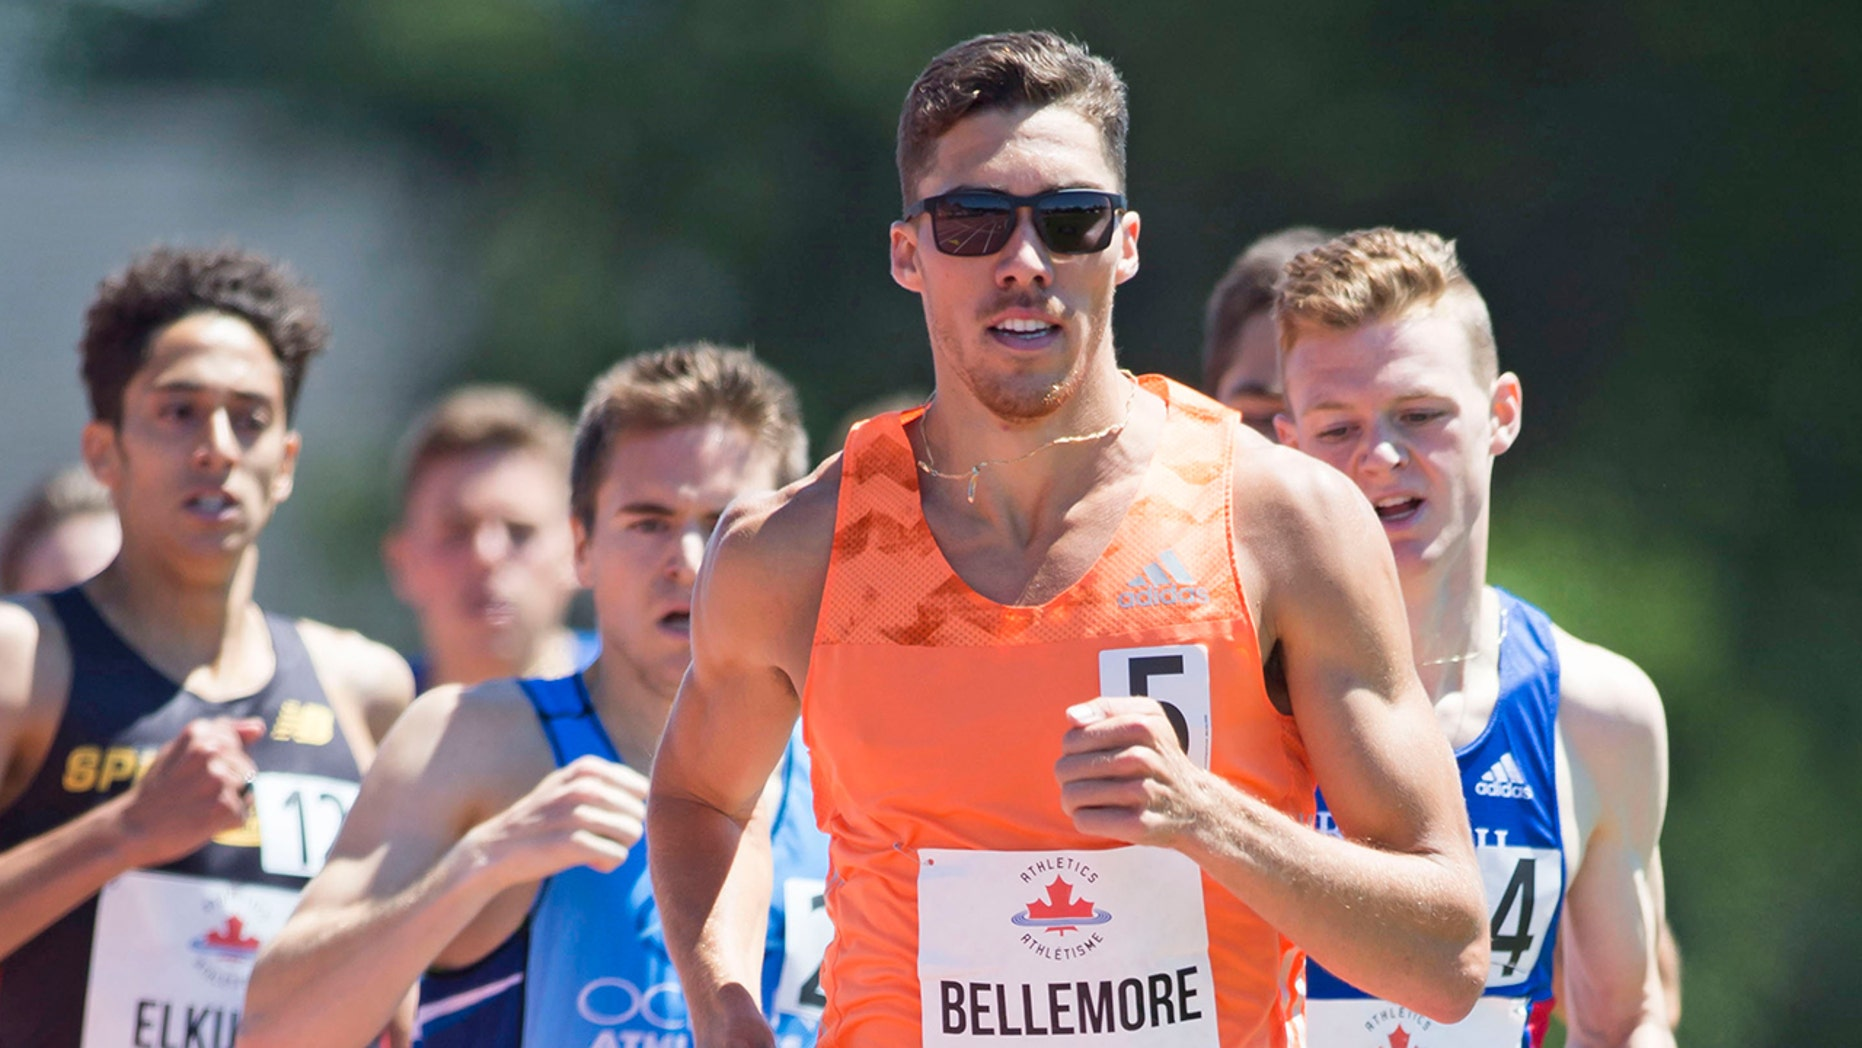 Corey Bellemore, seen here during an earlier race, was disqualified for leaving a half-ounce too much in his bottles.